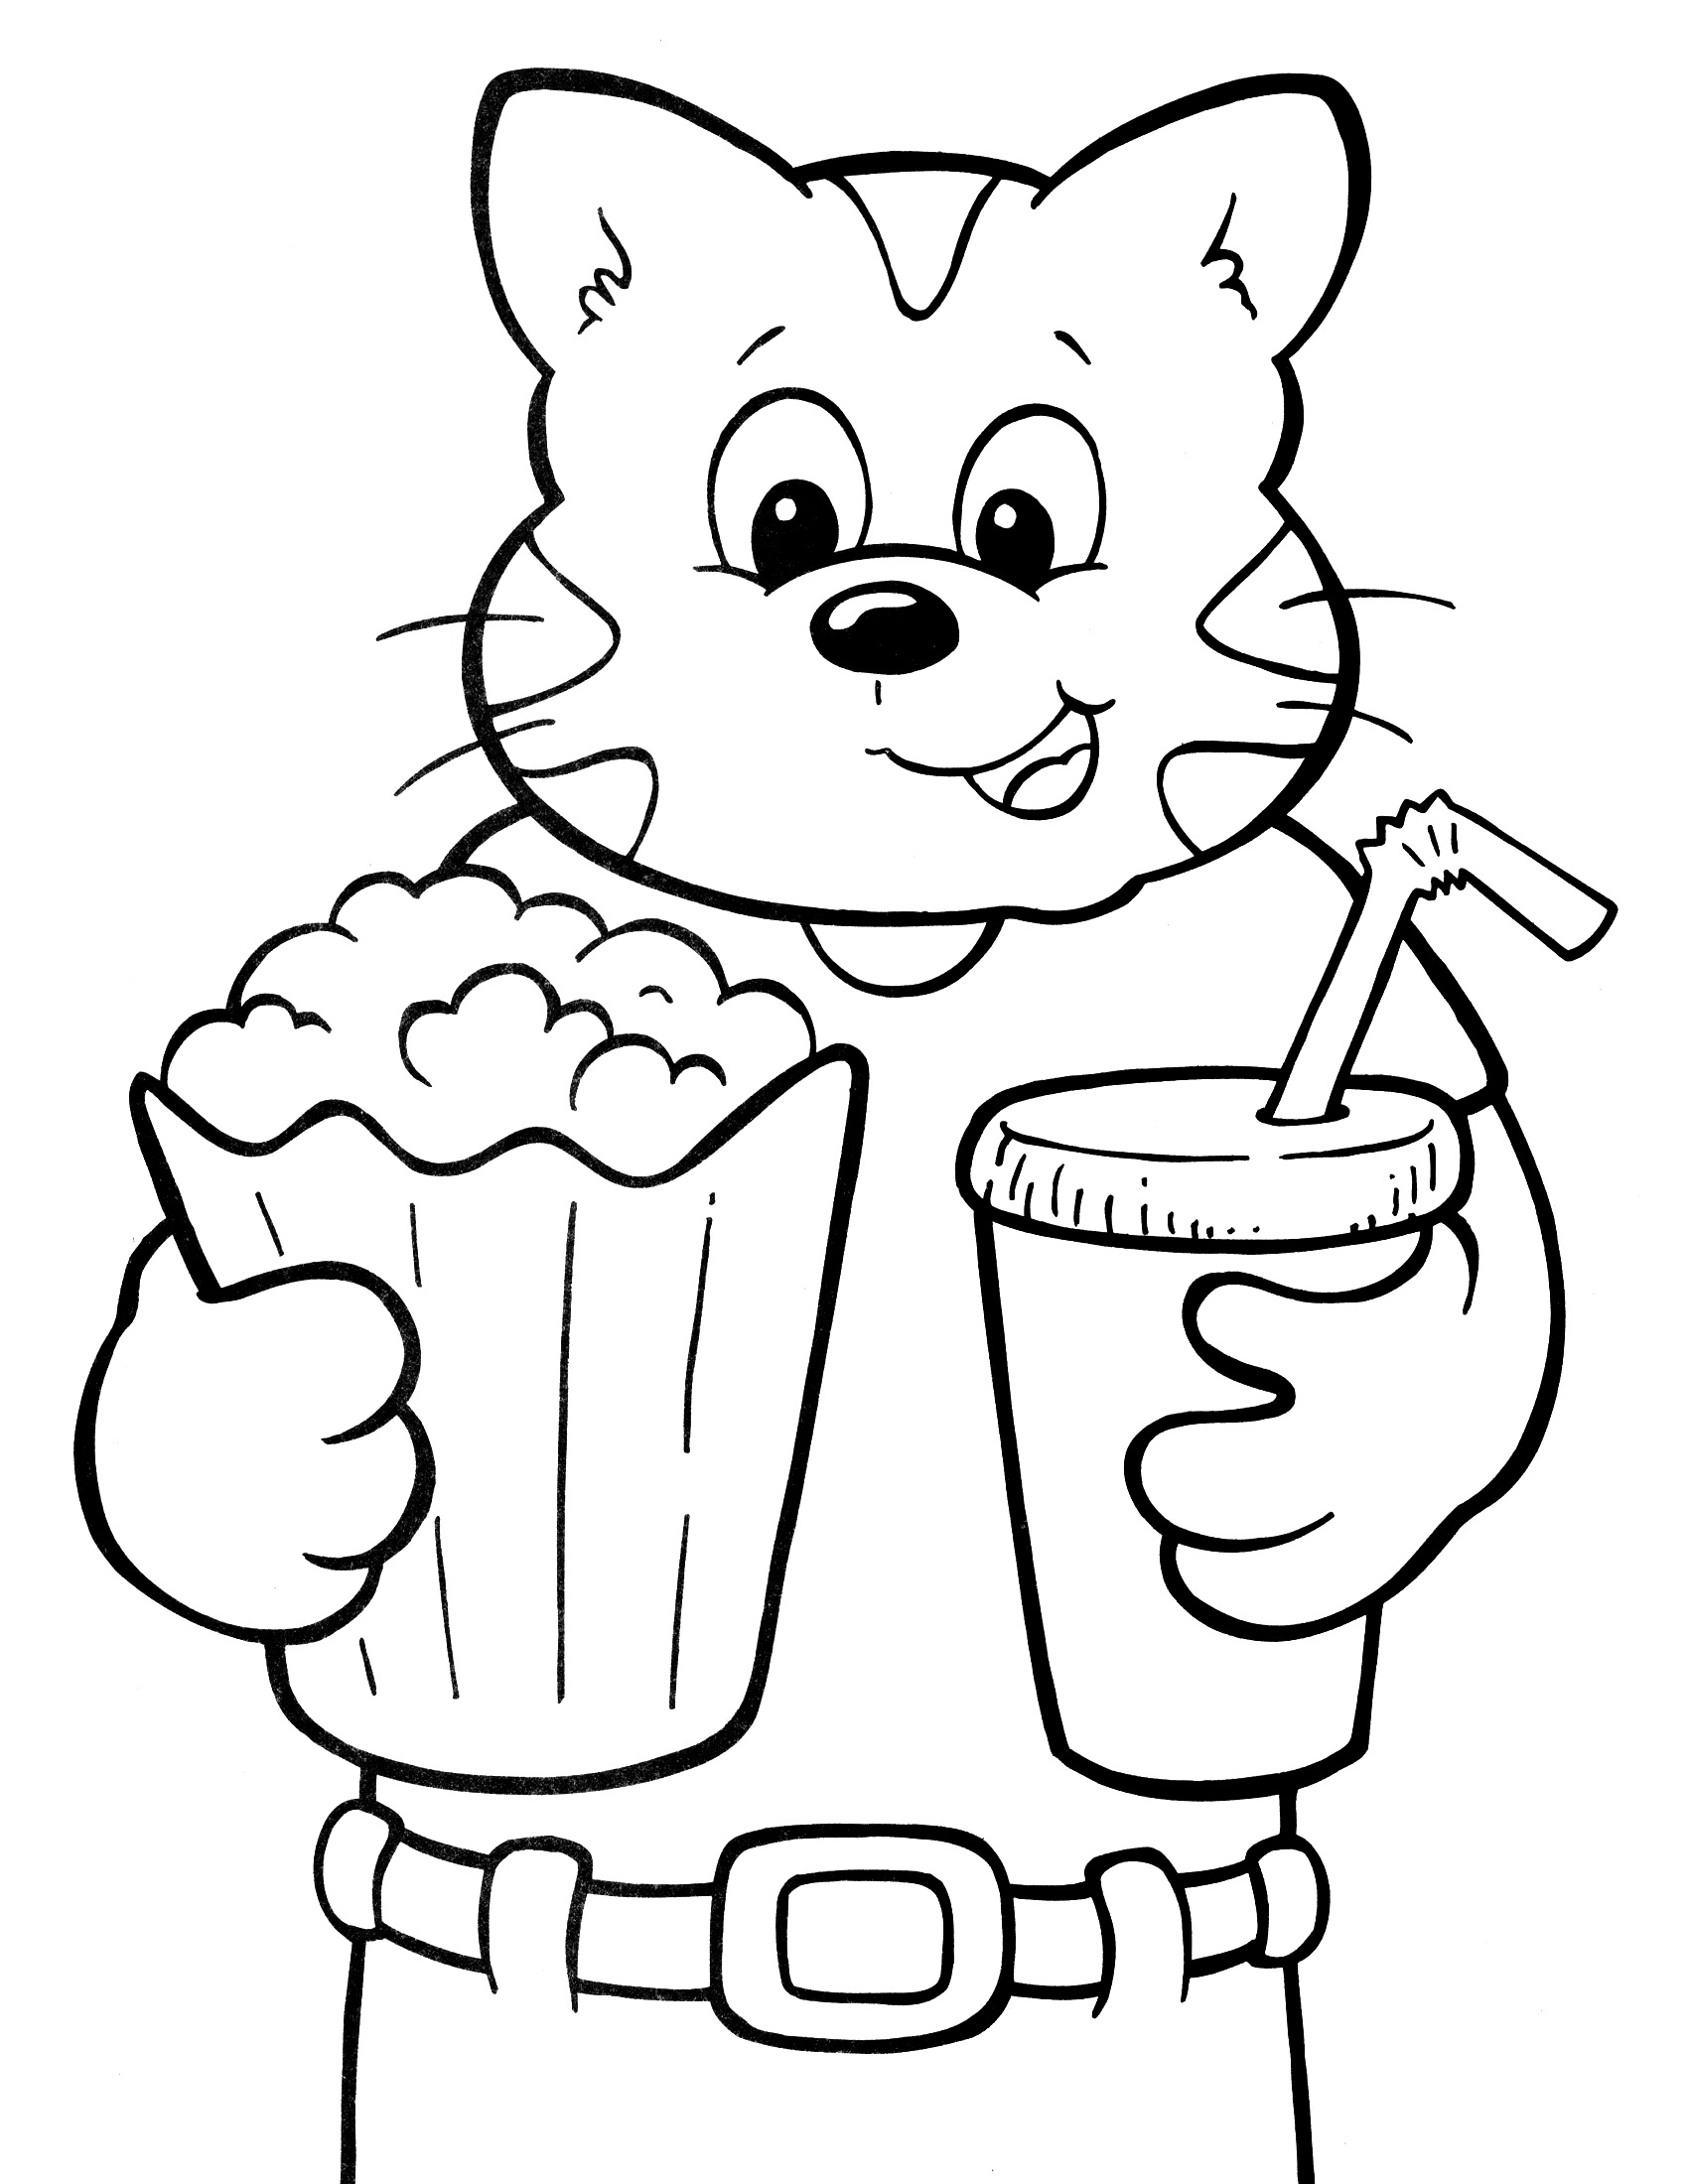 Free crayola coloring pages printable learning printable for Free crayola coloring pages